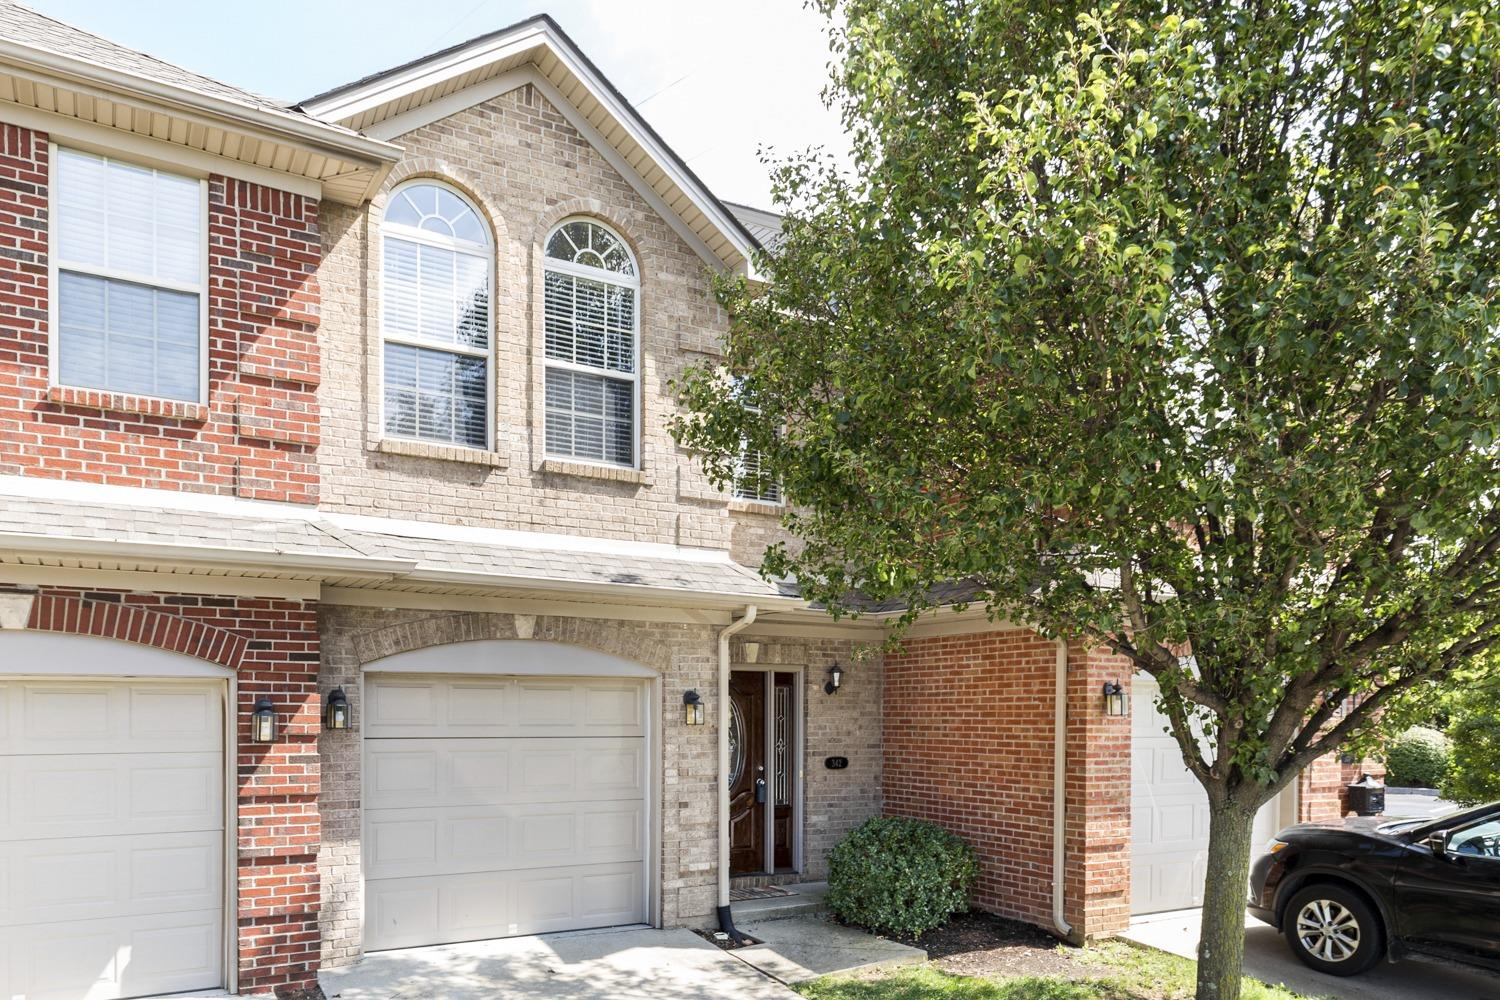 Open%20house%20this%20Sunday%20from%202%20to%204...Great%20location%20close%20to%20UK.%20This%20townhome%20has%20a%20nice%20set%20up%20for%20a%20roommate%20situation%20if%20desired.%20The%20Master%20Bedroom%20suite%20has%20a%20huge-walk%20in%20closet%20and%20there%20is%20a%20garden%20tub/shower%20combination%20in%20the%20bathroom.%20Gas%20Fireplace%20in%20great%20room.%20A%20full%20compliment%20of%20appliances%20stay%20with%20property%20including%20a%20washer%20and%20dryer.%20One%20car%20garage%20with%20off%20street%20parking%20and%20guest%20parking%20lot%20close%20by.%20Covered%20back%20deck.